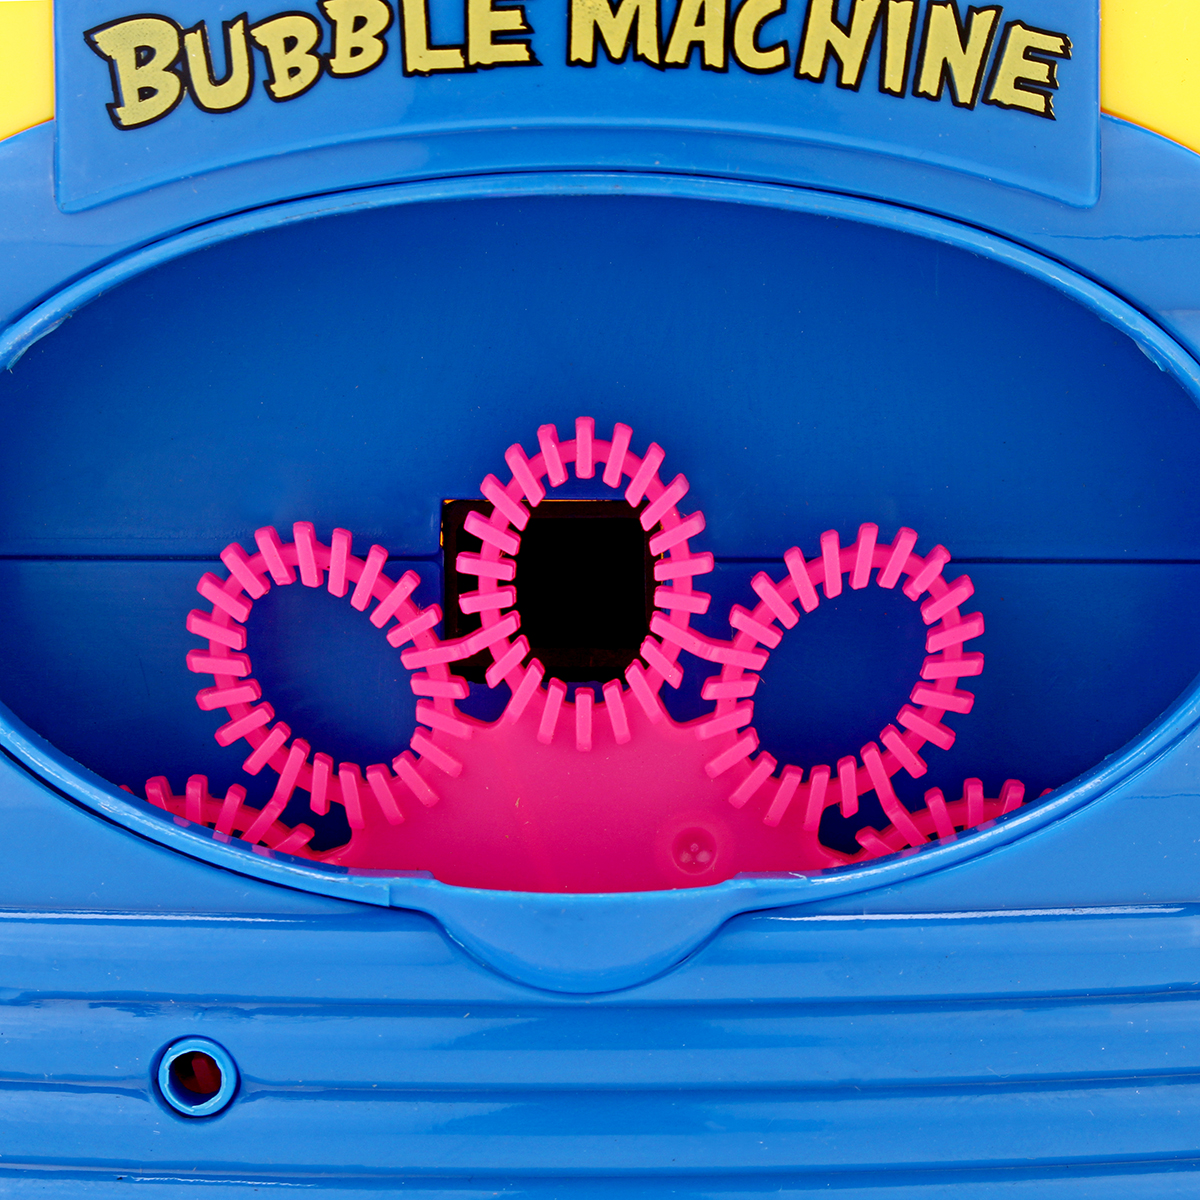 Electronic Automatic Bubble Machine Blower Maker Toys For Kids light Up Flashing Bubble Gun